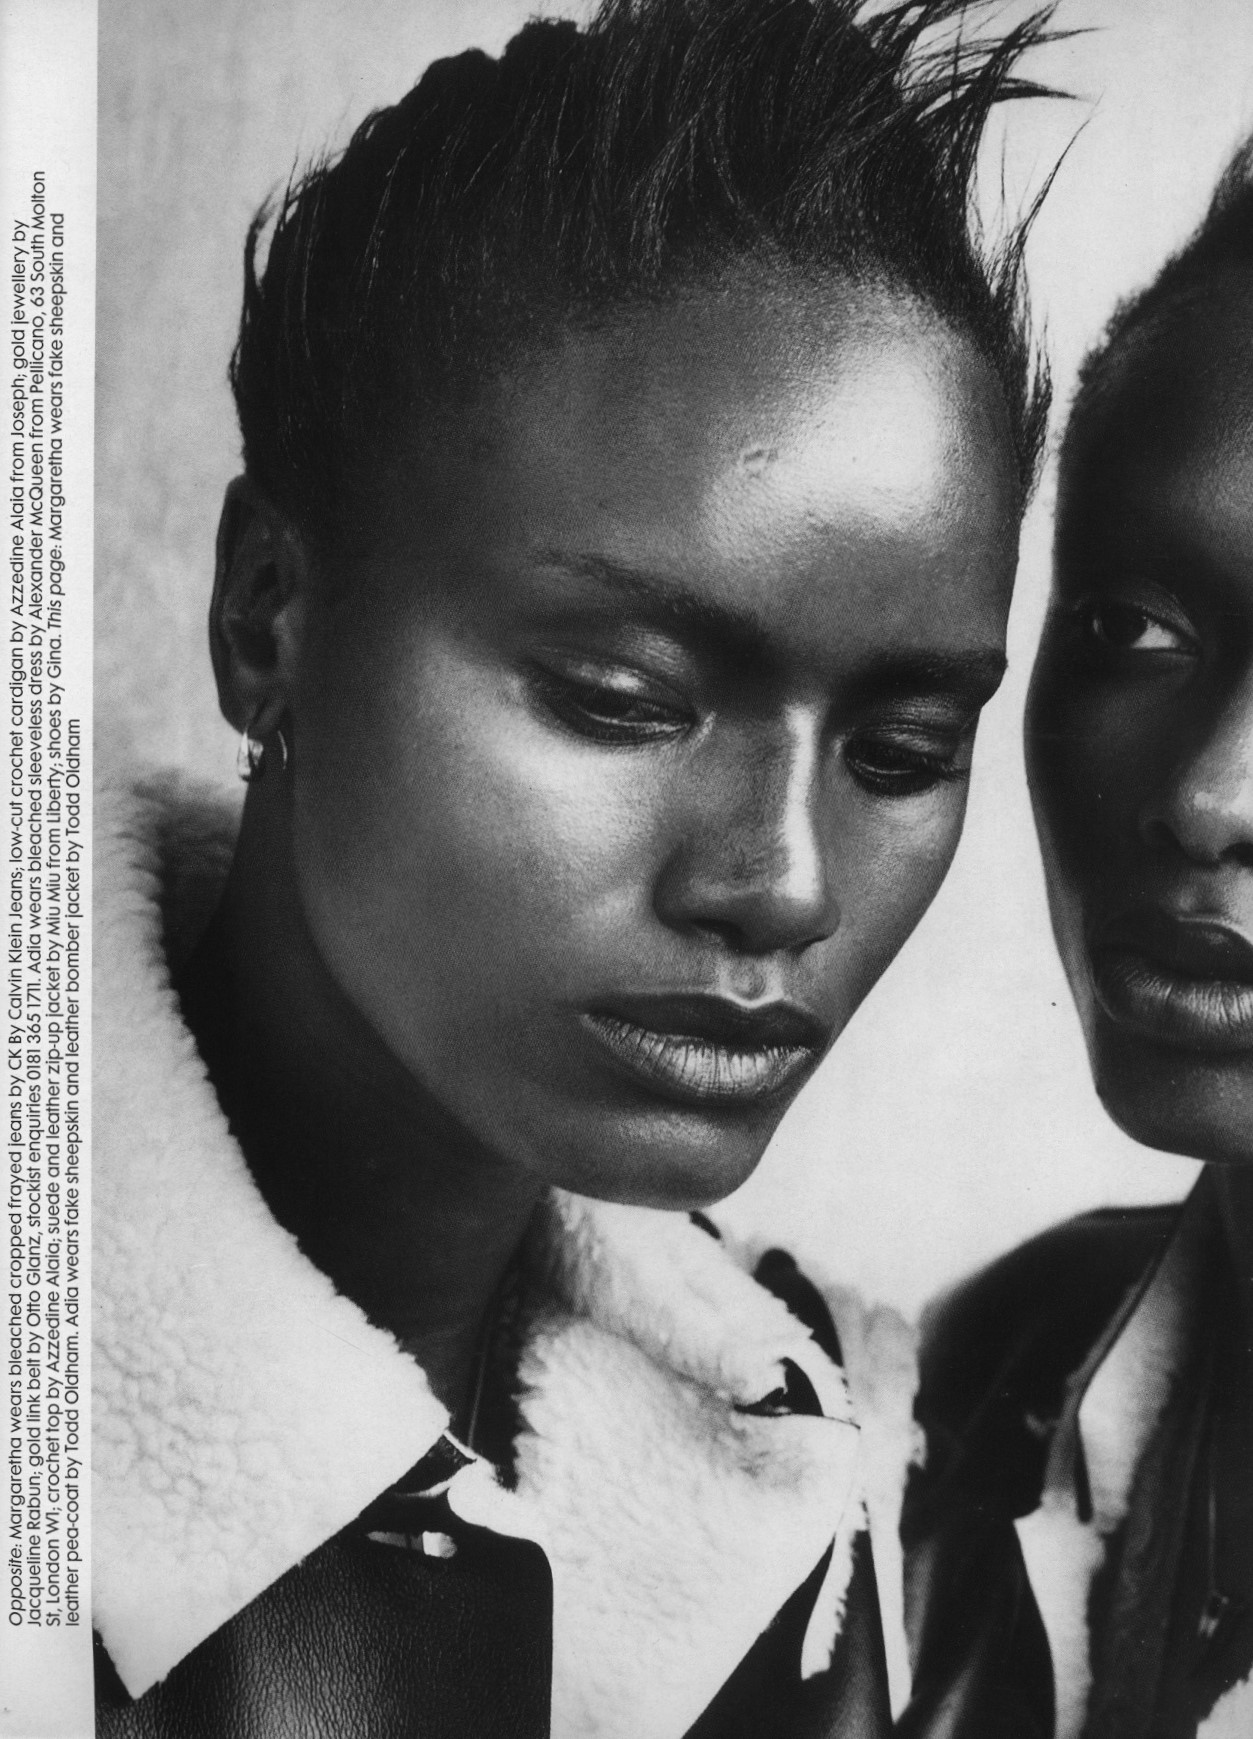 SOUTH SIDE | PHOTOGRAPHY PETER LINDBERGH | STYLING KARL TEMPLER | THE FACE NO.98 | NOVEMBER 1996